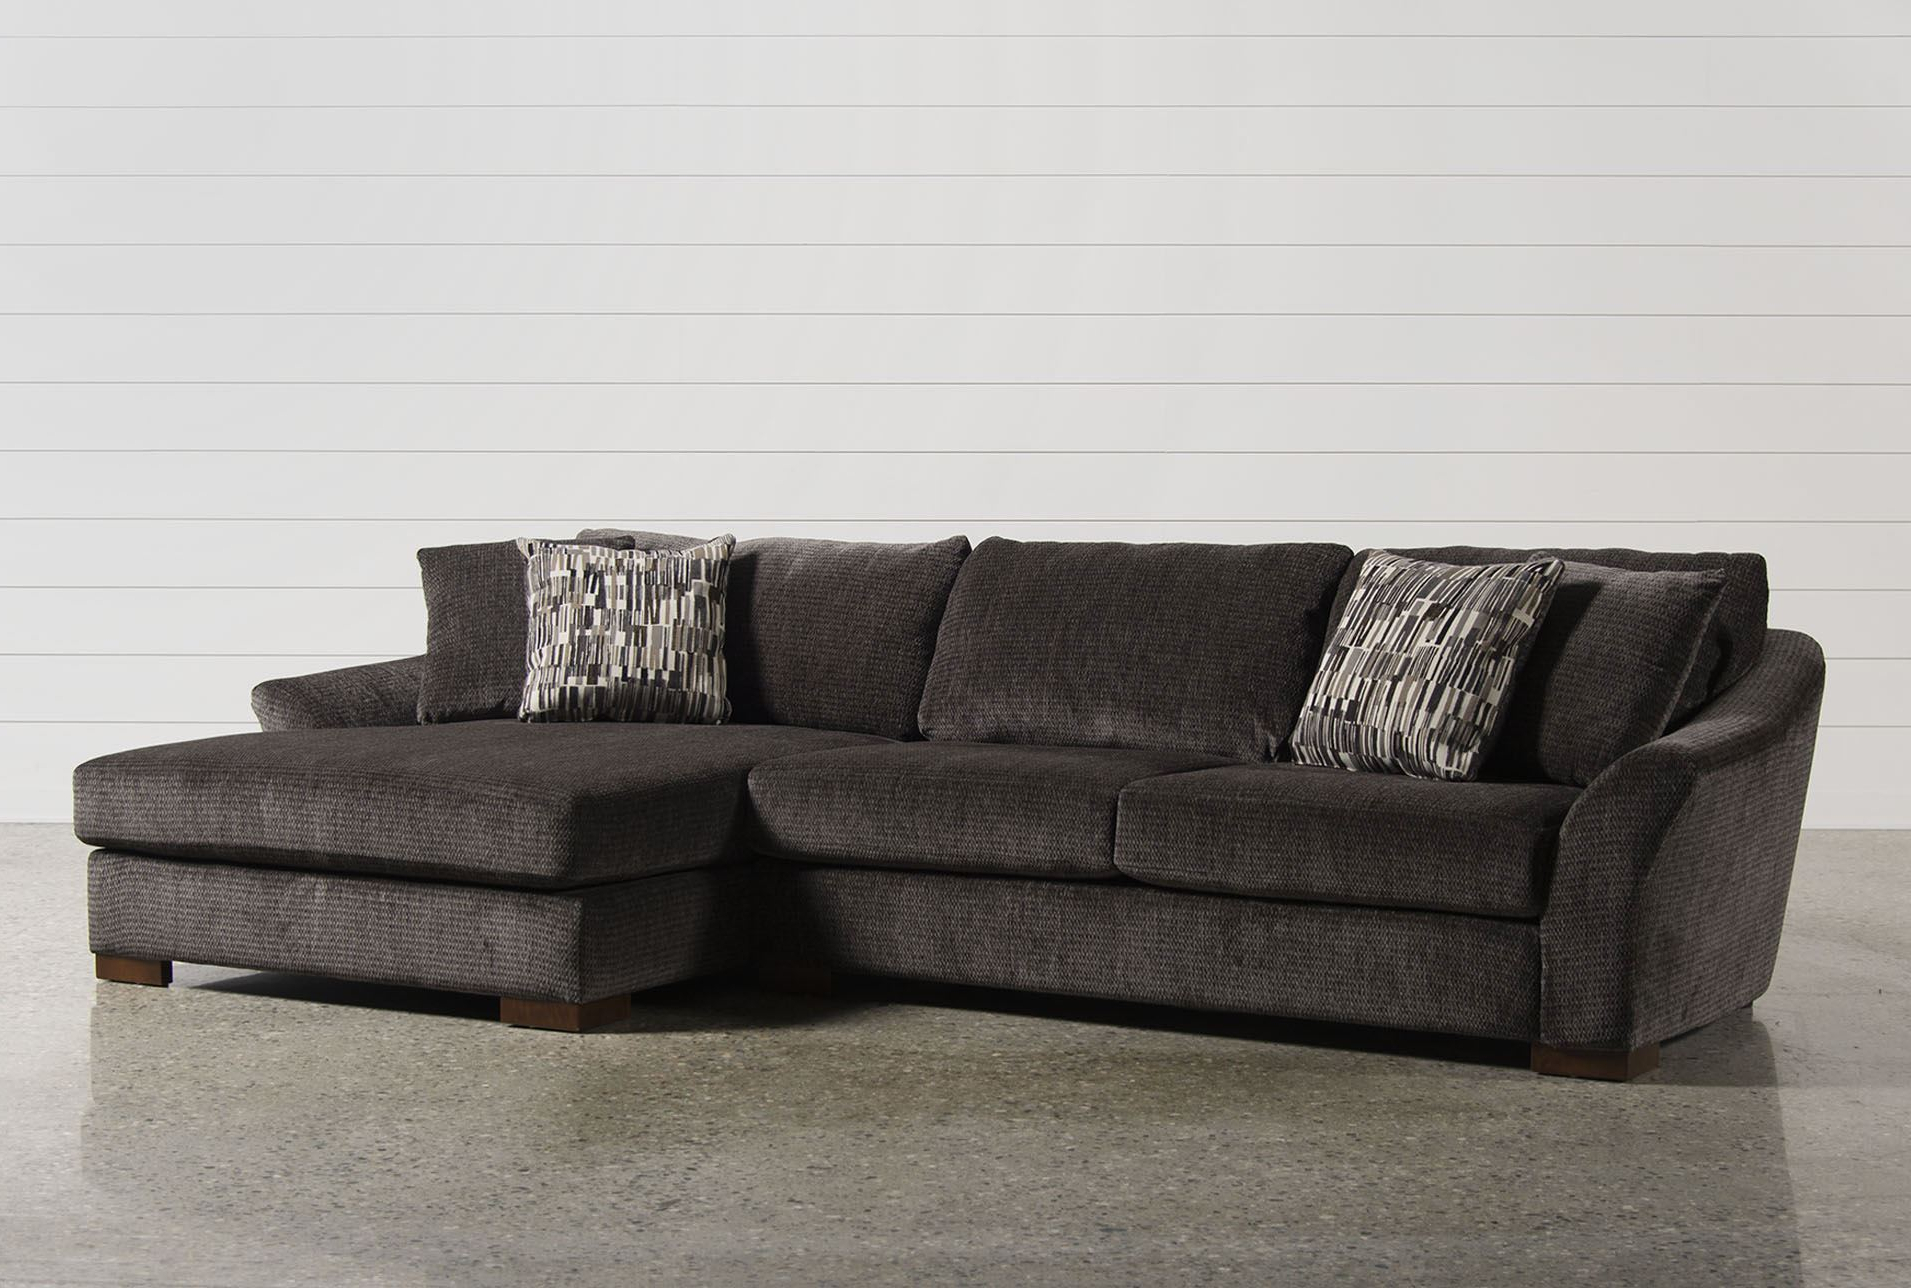 Kuxniya Throughout Widely Used Tenny Dark Grey 2 Piece Left Facing Chaise Sectionals With 2 Headrest (View 20 of 20)